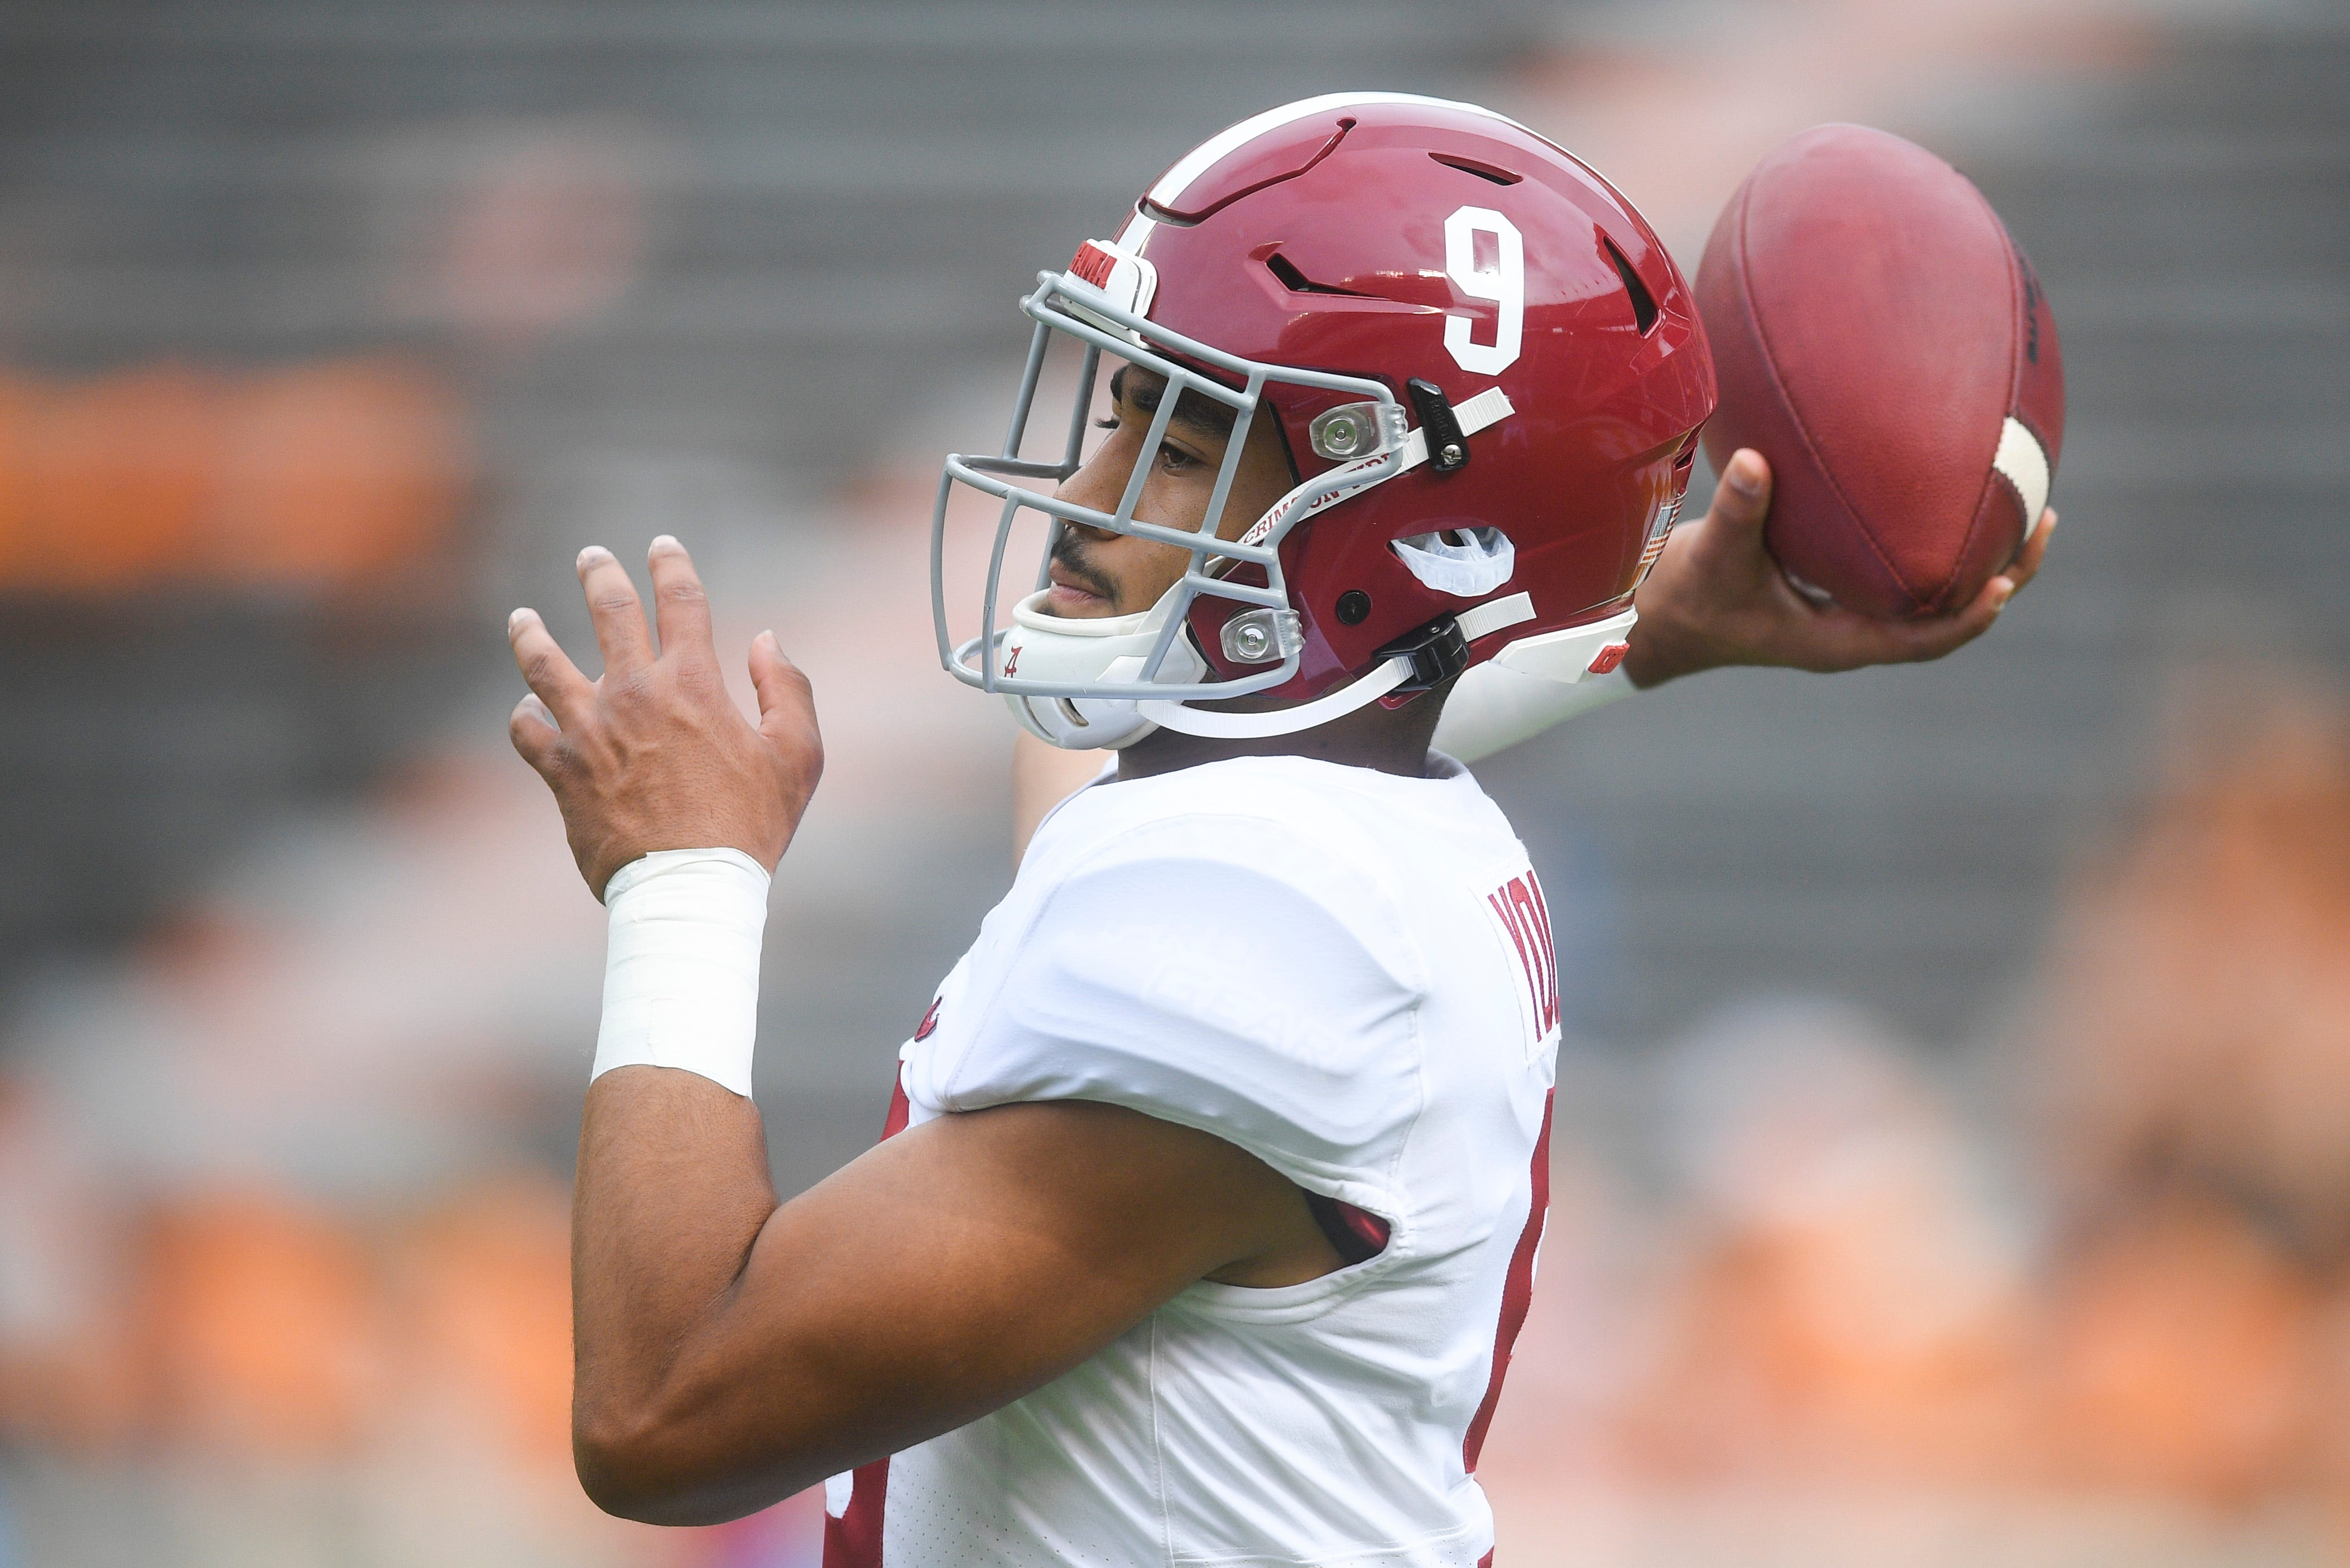 Alabama QB Bryce Young is a true sophomore whose first season on campus came against the backdrop of the pandemic, making it difficult to assess his development since enrolling last winter.